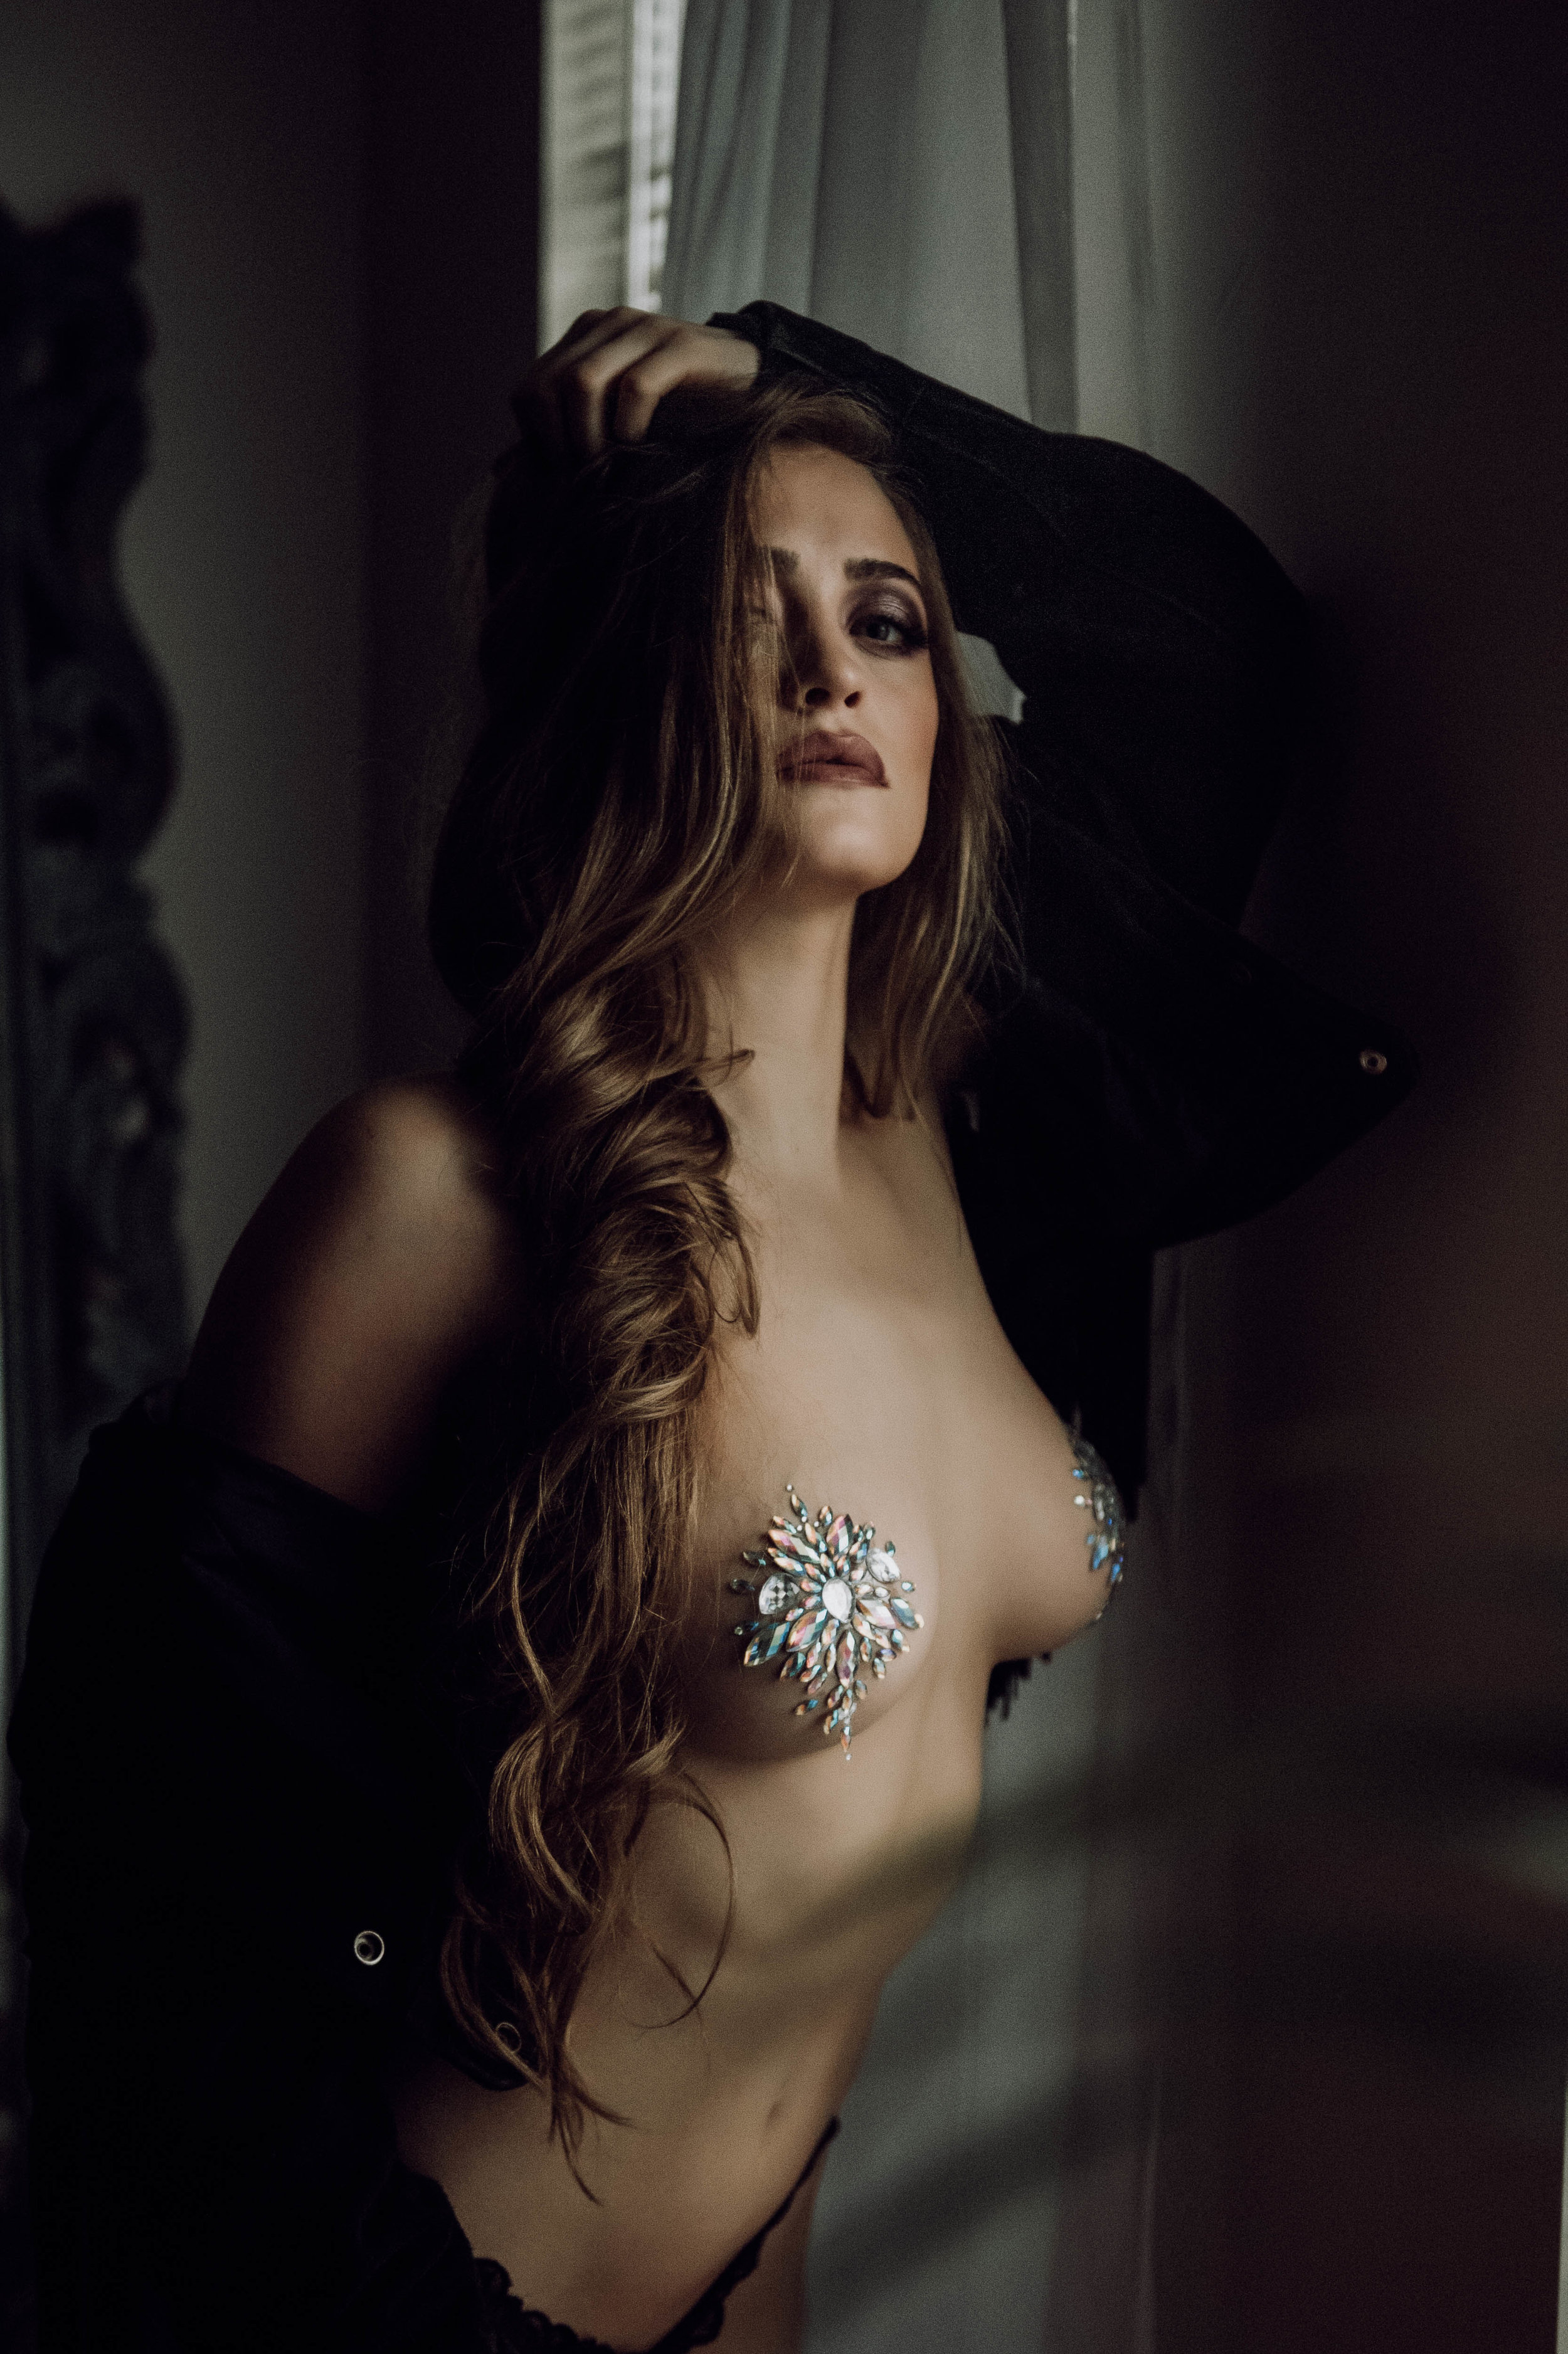 Sexy close up portrait of brunette with jewels boudoir photography New York City